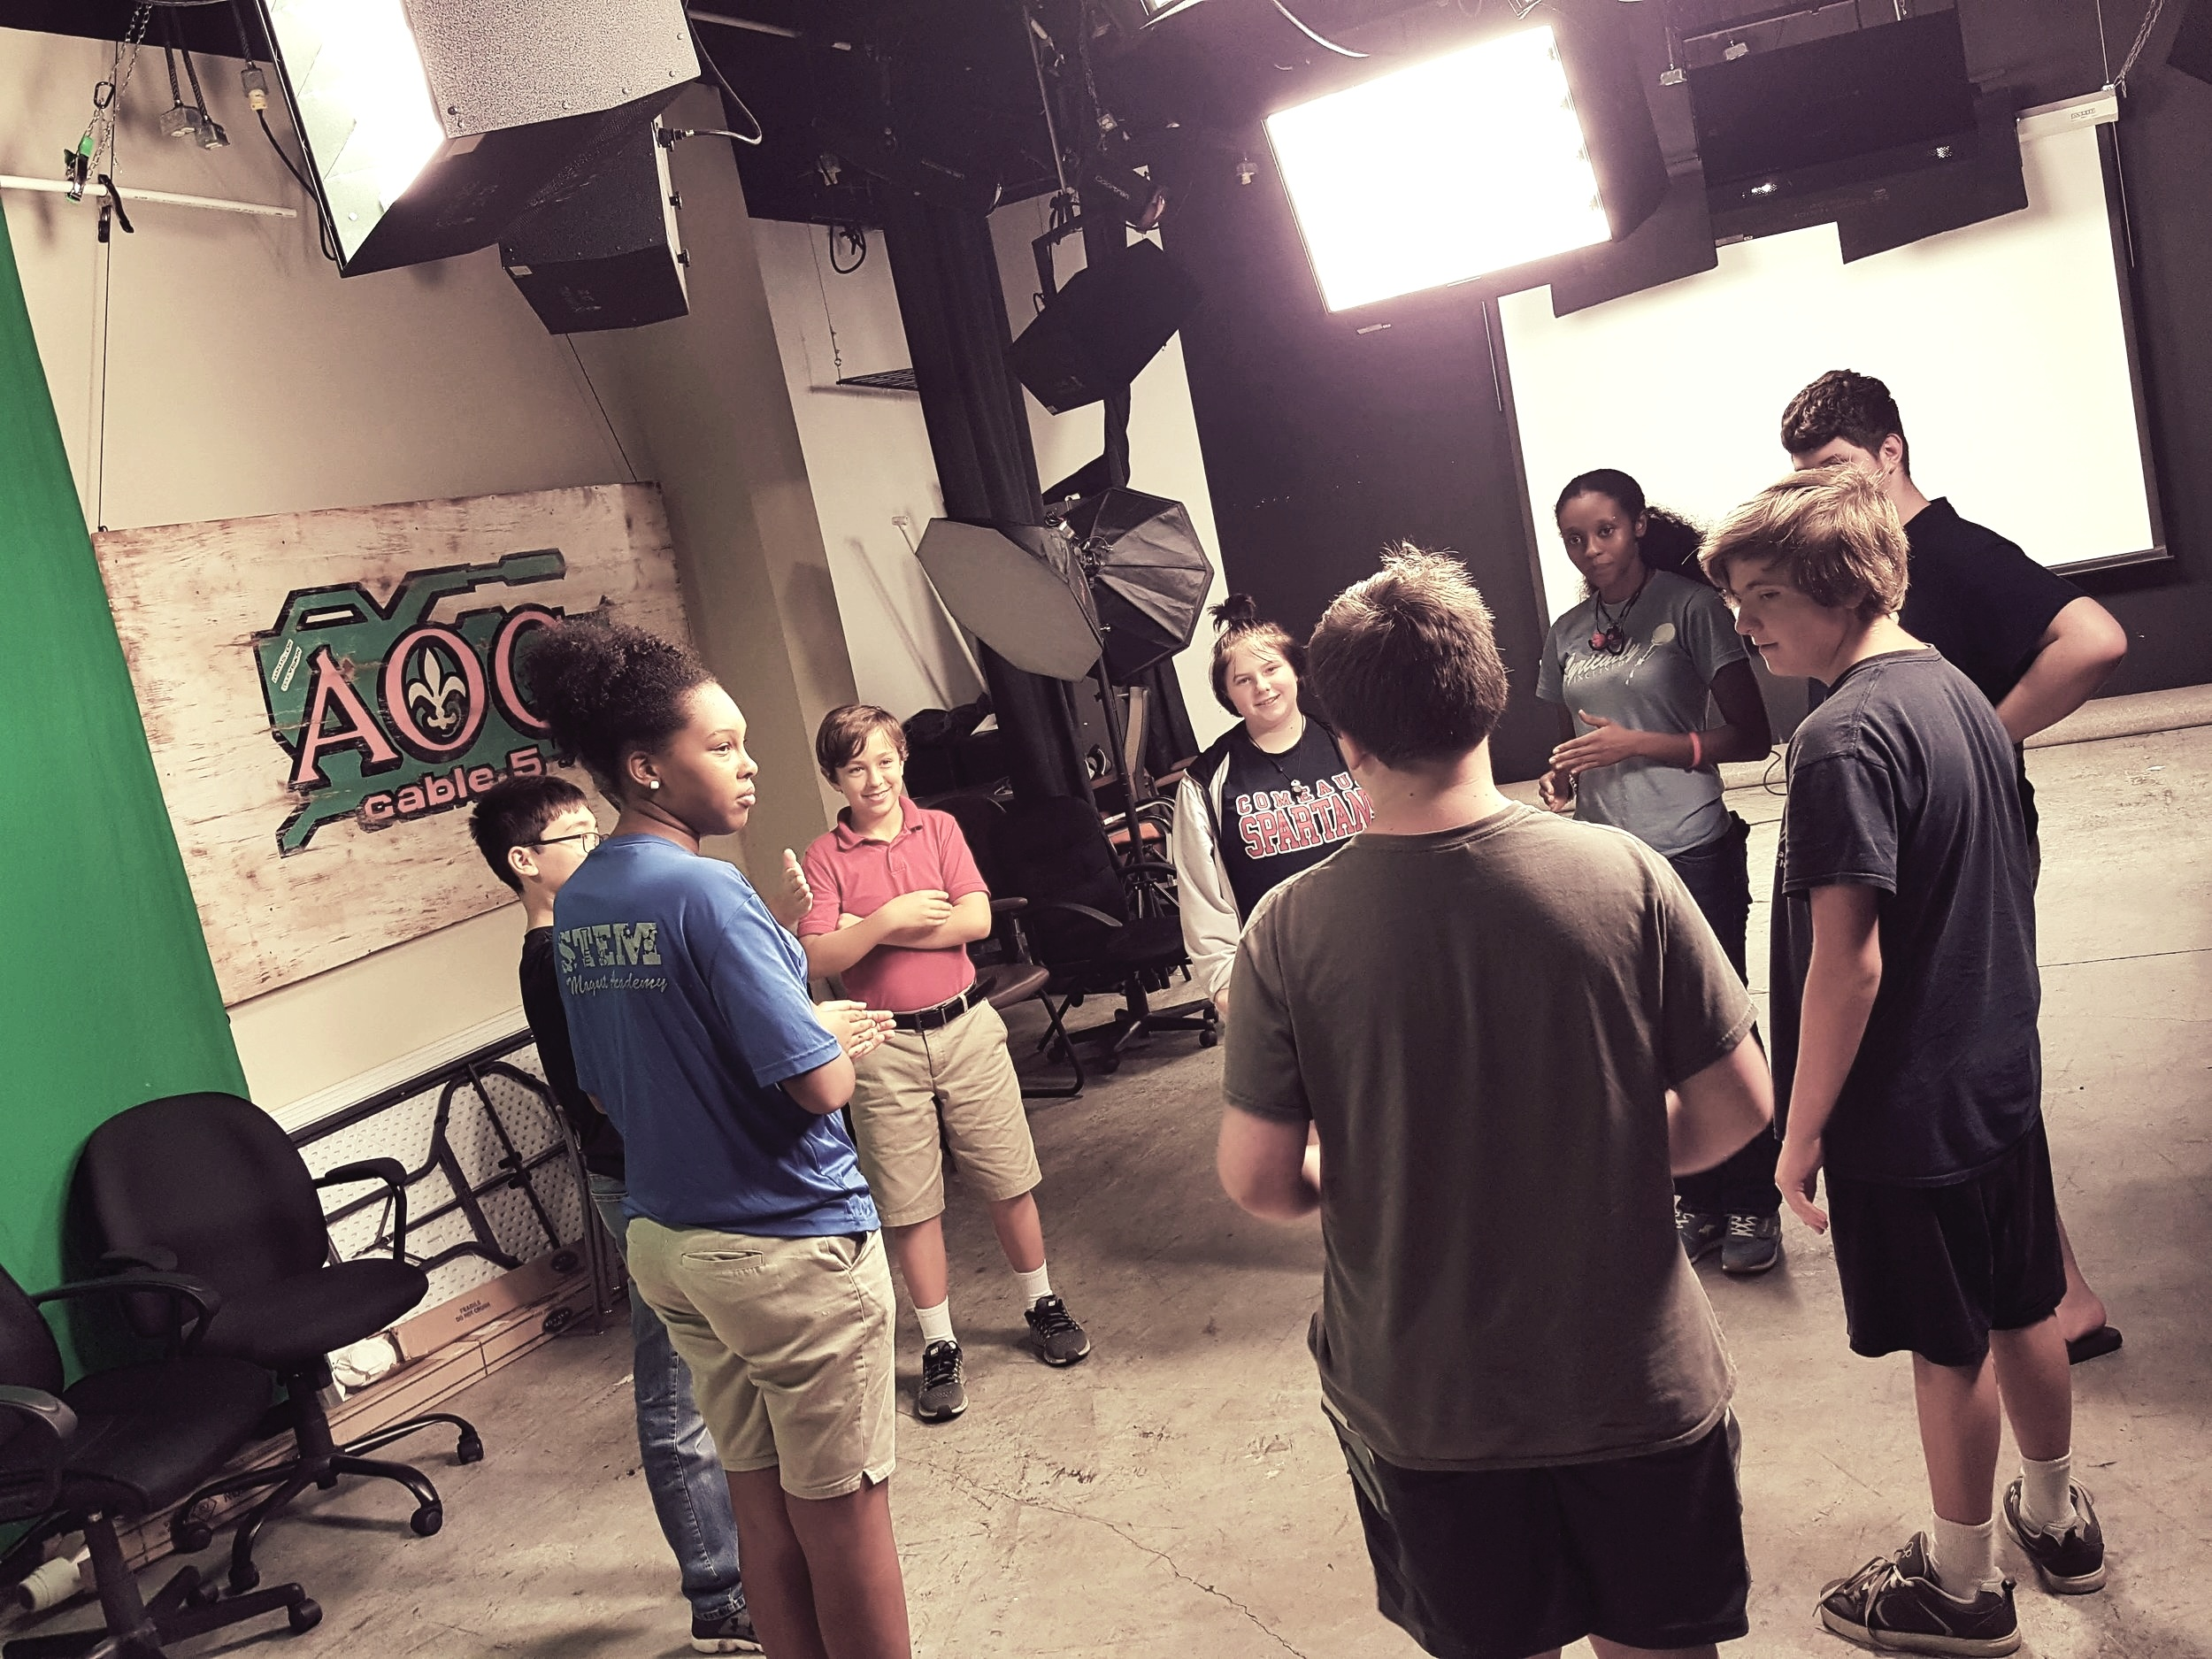 TEEN MUSE - Mondays, 4:30-6:00pm (Every Spring/Fall)Ages 12-17Find out more about AOC's after-school media education program!